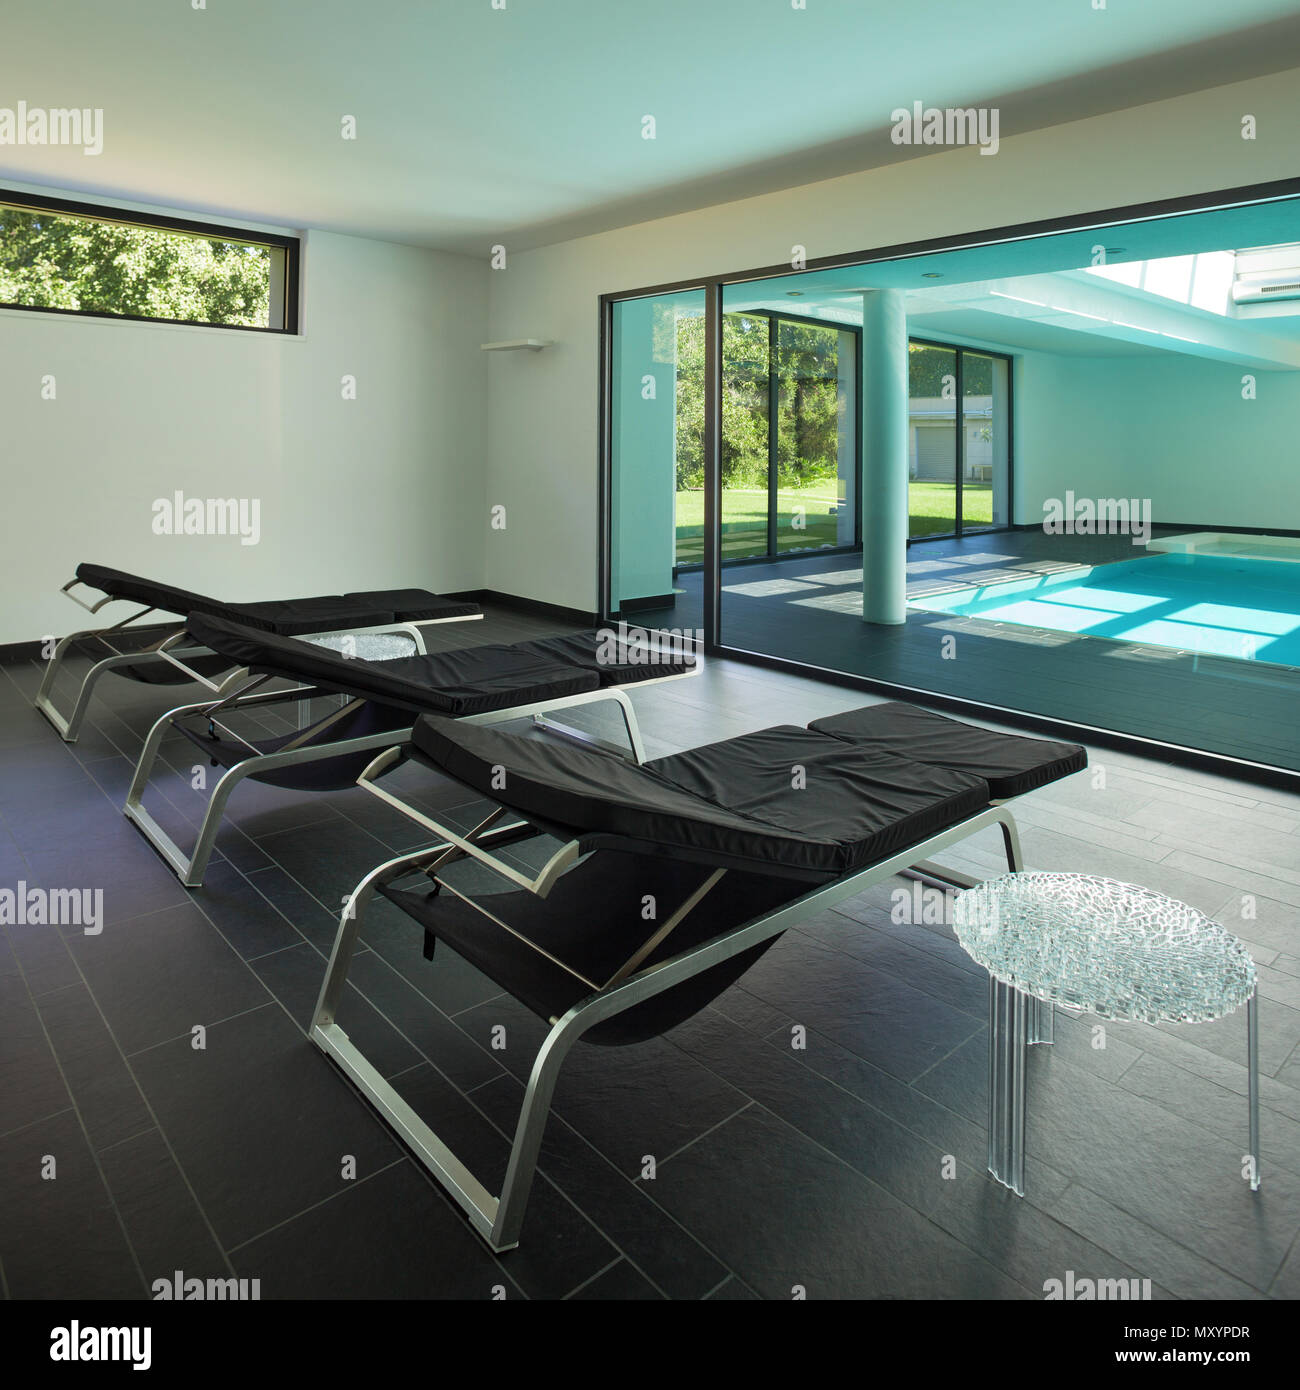 Indoor Swimming Pool Of A Modern House With Spa Room With Sunbeds Stock Photo 188695075 Alamy